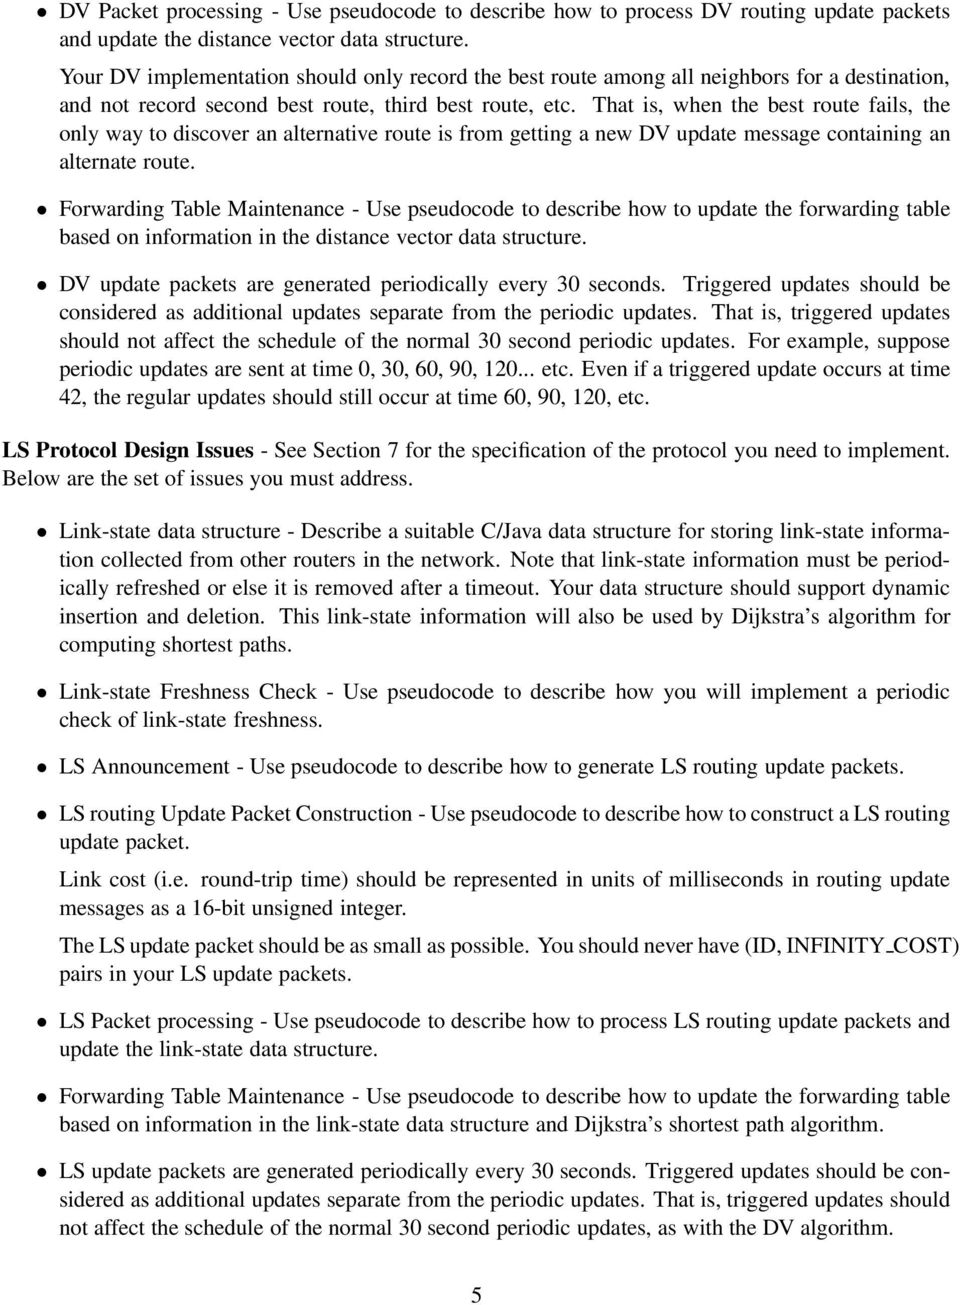 Data Networks Project 2: Design Document for Intra-Domain